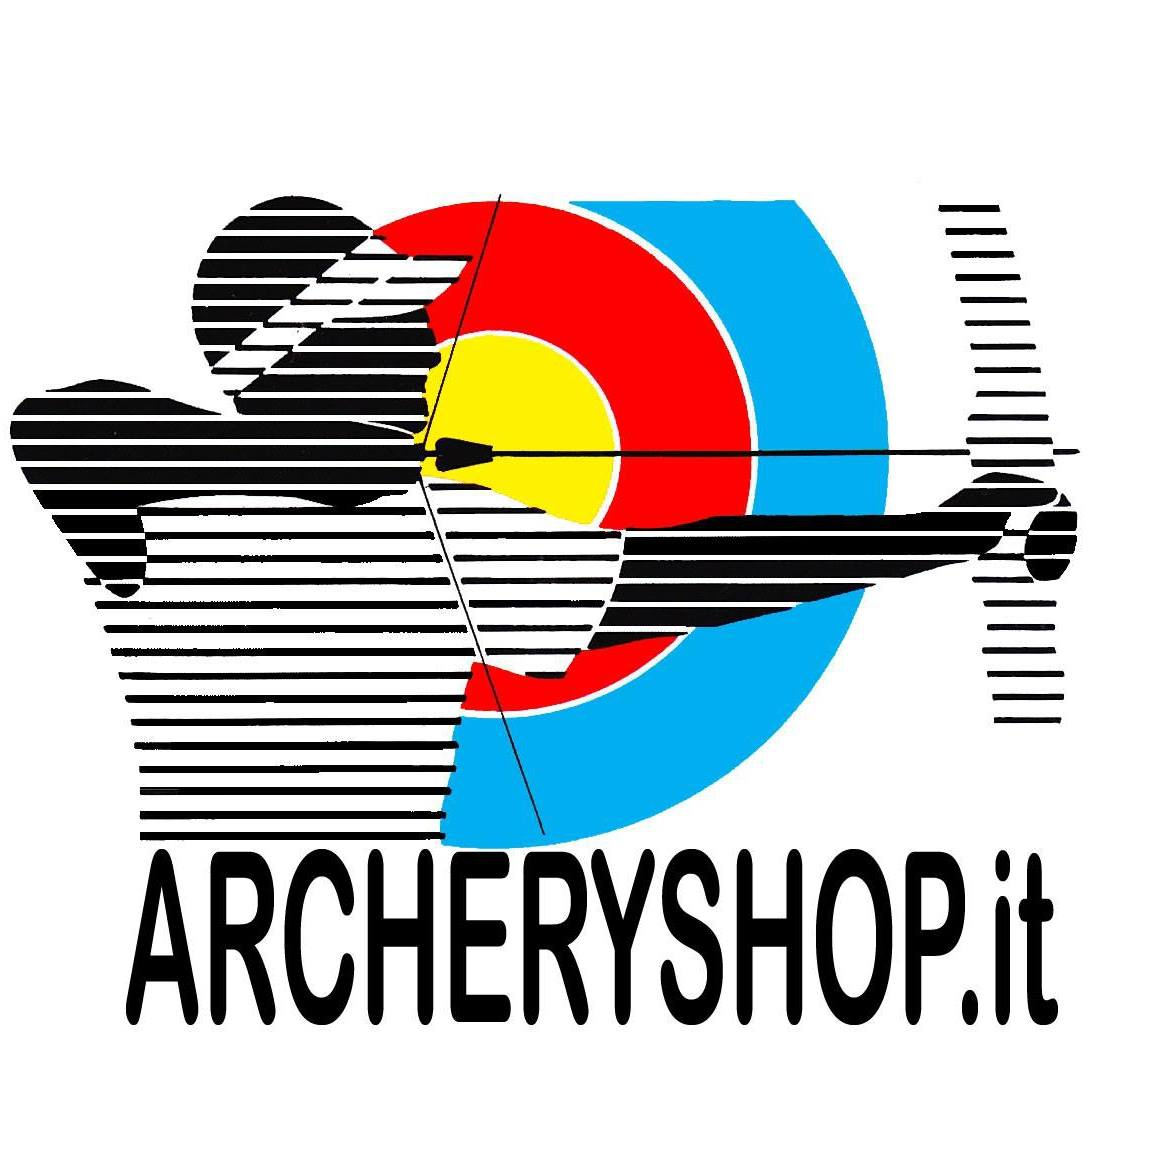 Archeryshop.it